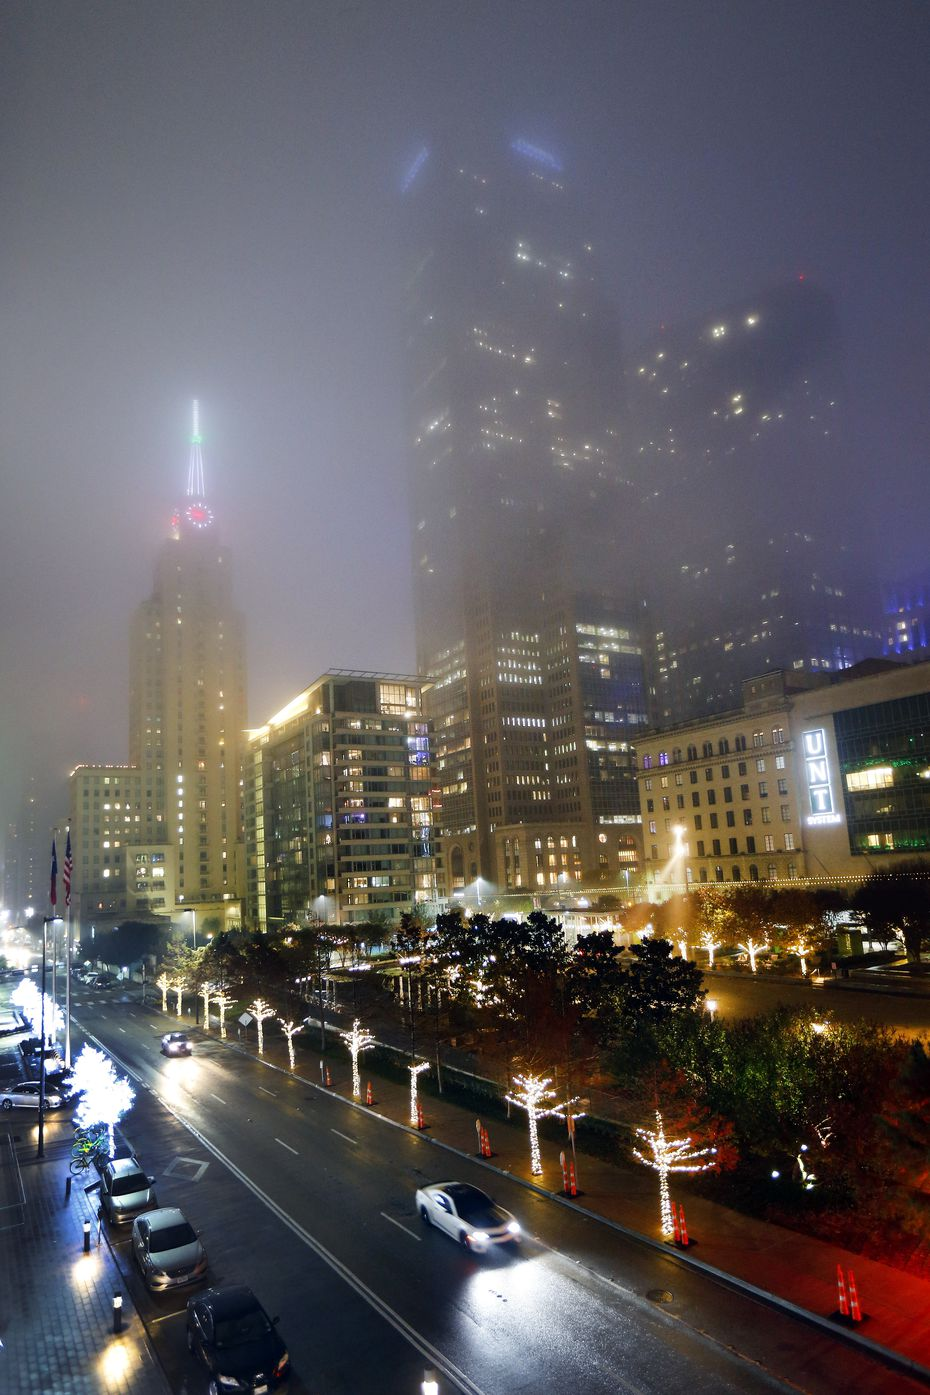 Fog settled over the historic Mercantile Building (left) and Comerica Bank Tower (center) and Main Street Garden Park in downtown Dallas on Monday evening.